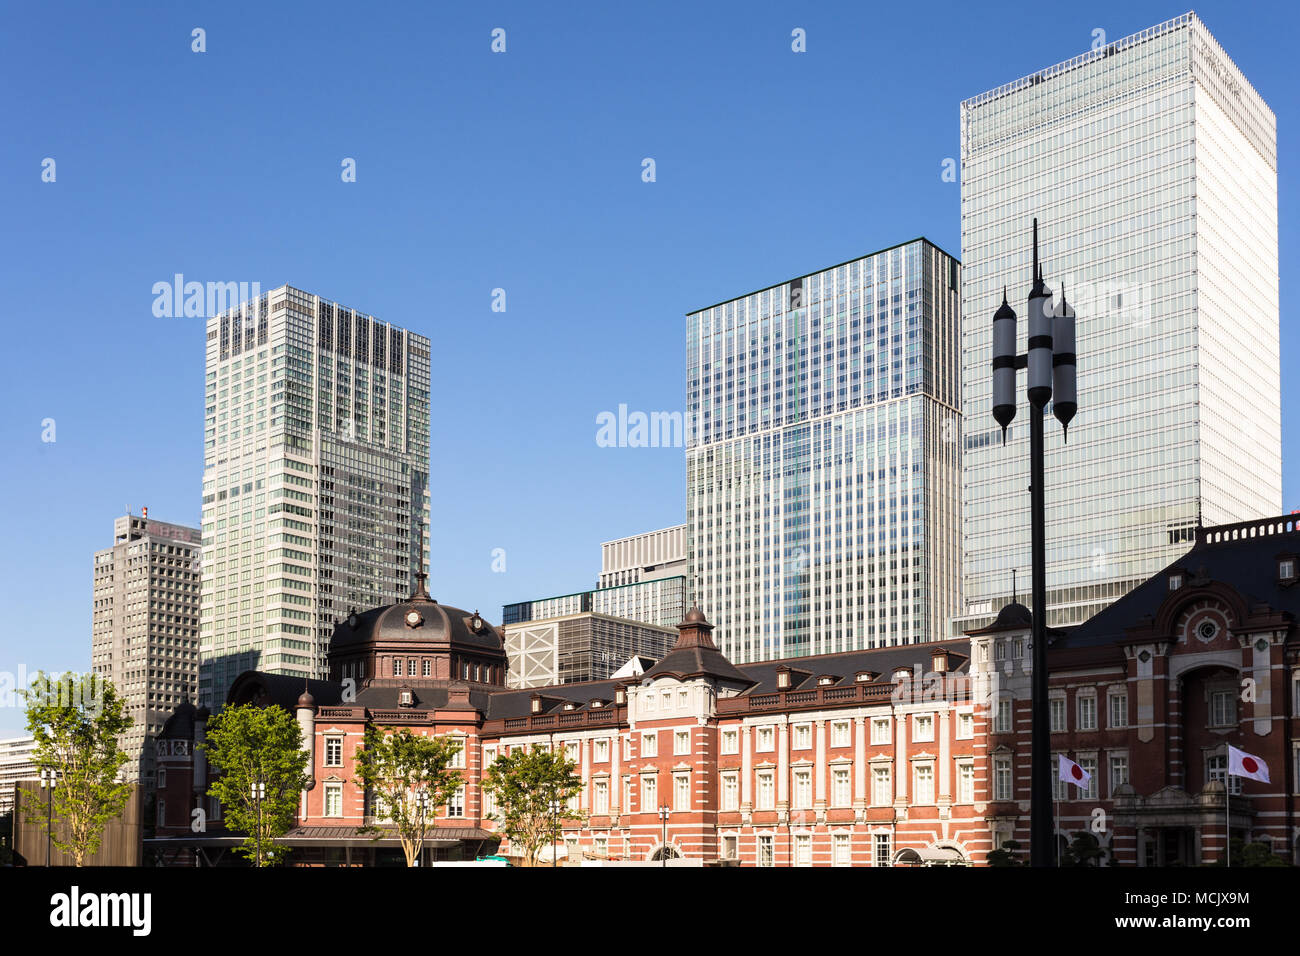 The classic architecture of the Tokyo JR train station contrasts with modern office building in the buisiness district of Marunouchi in Tokyo, Japan c - Stock Image